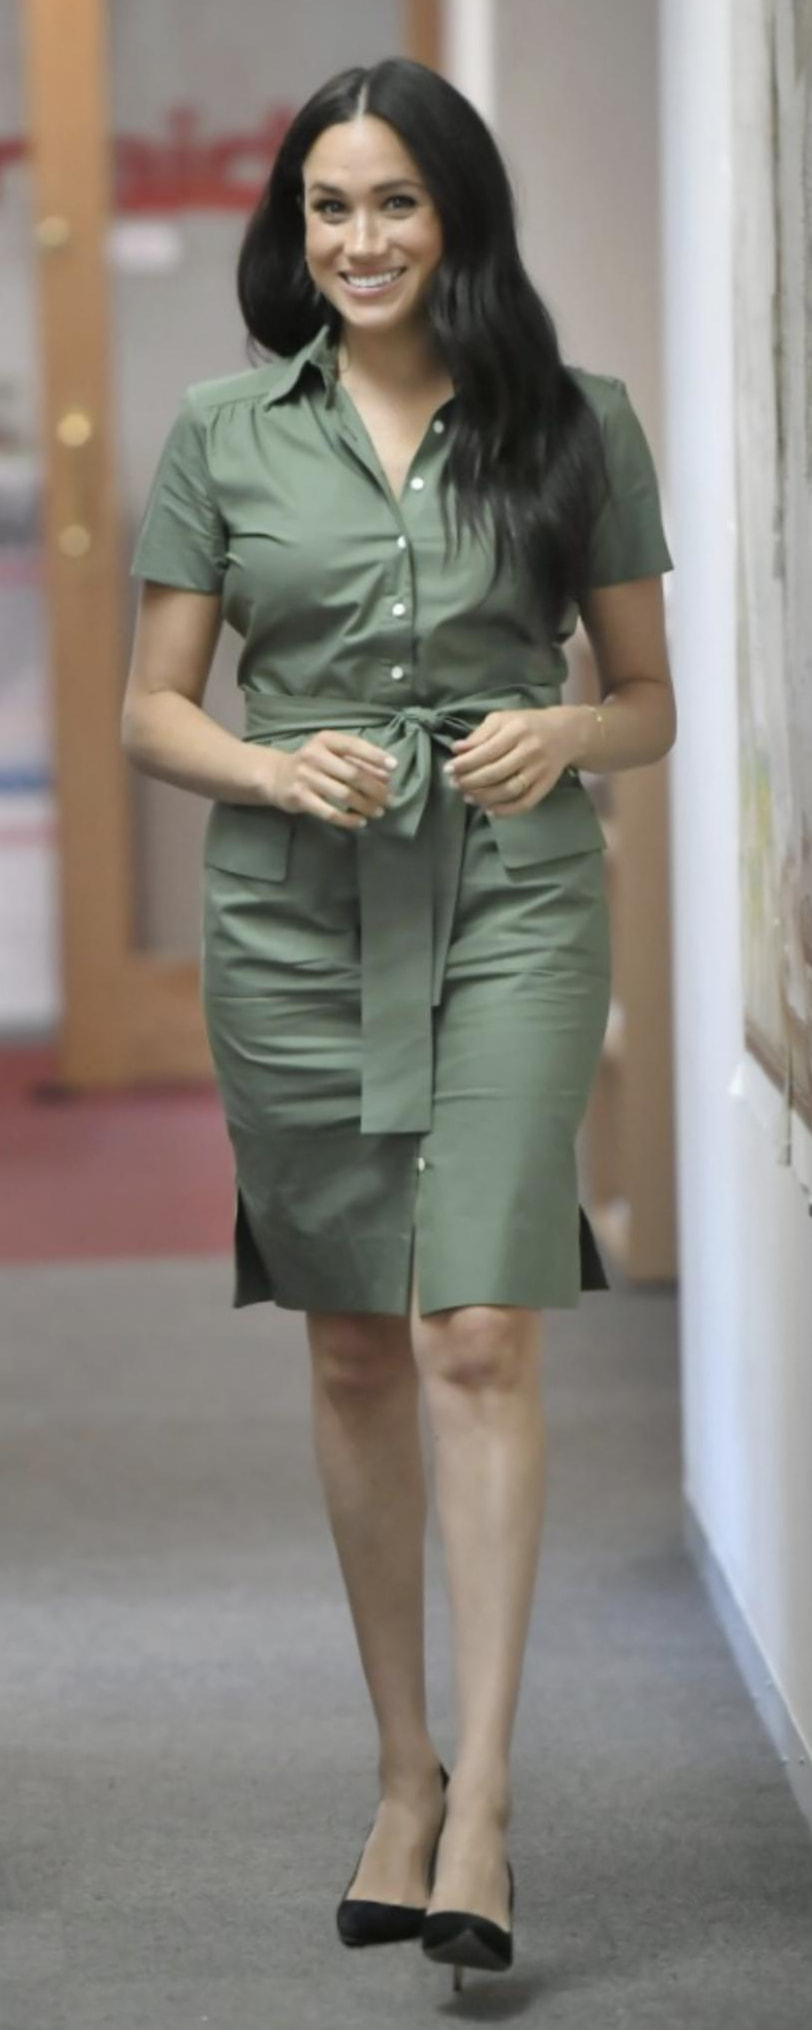 Room 502 ​Khaki Model 2 - Stephanie Shirt Dress as seen on Meghan Markle, the Duchess of Sussex